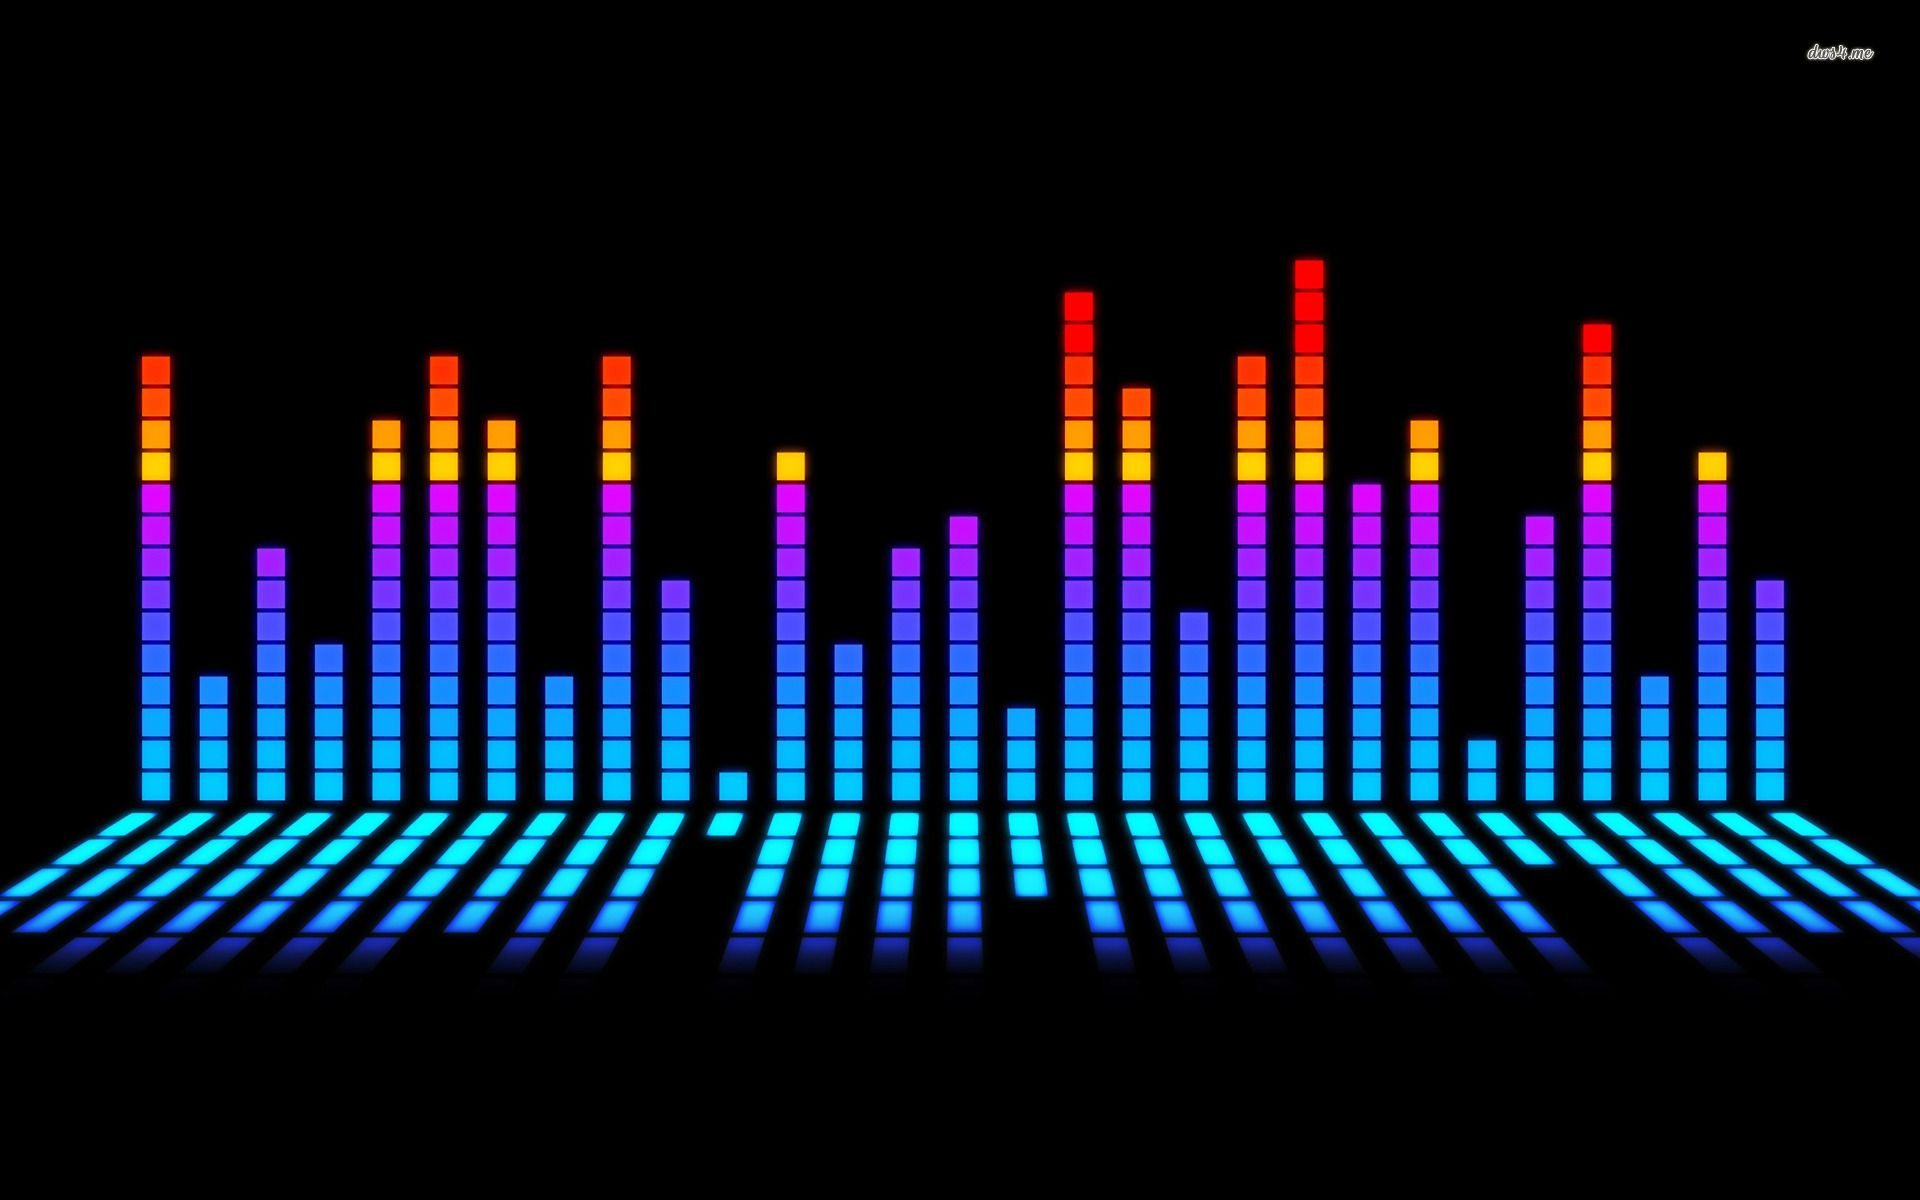 Music Equalizer Wallpaper: Blue Music Equalizer HD Wallpaper - Google Search